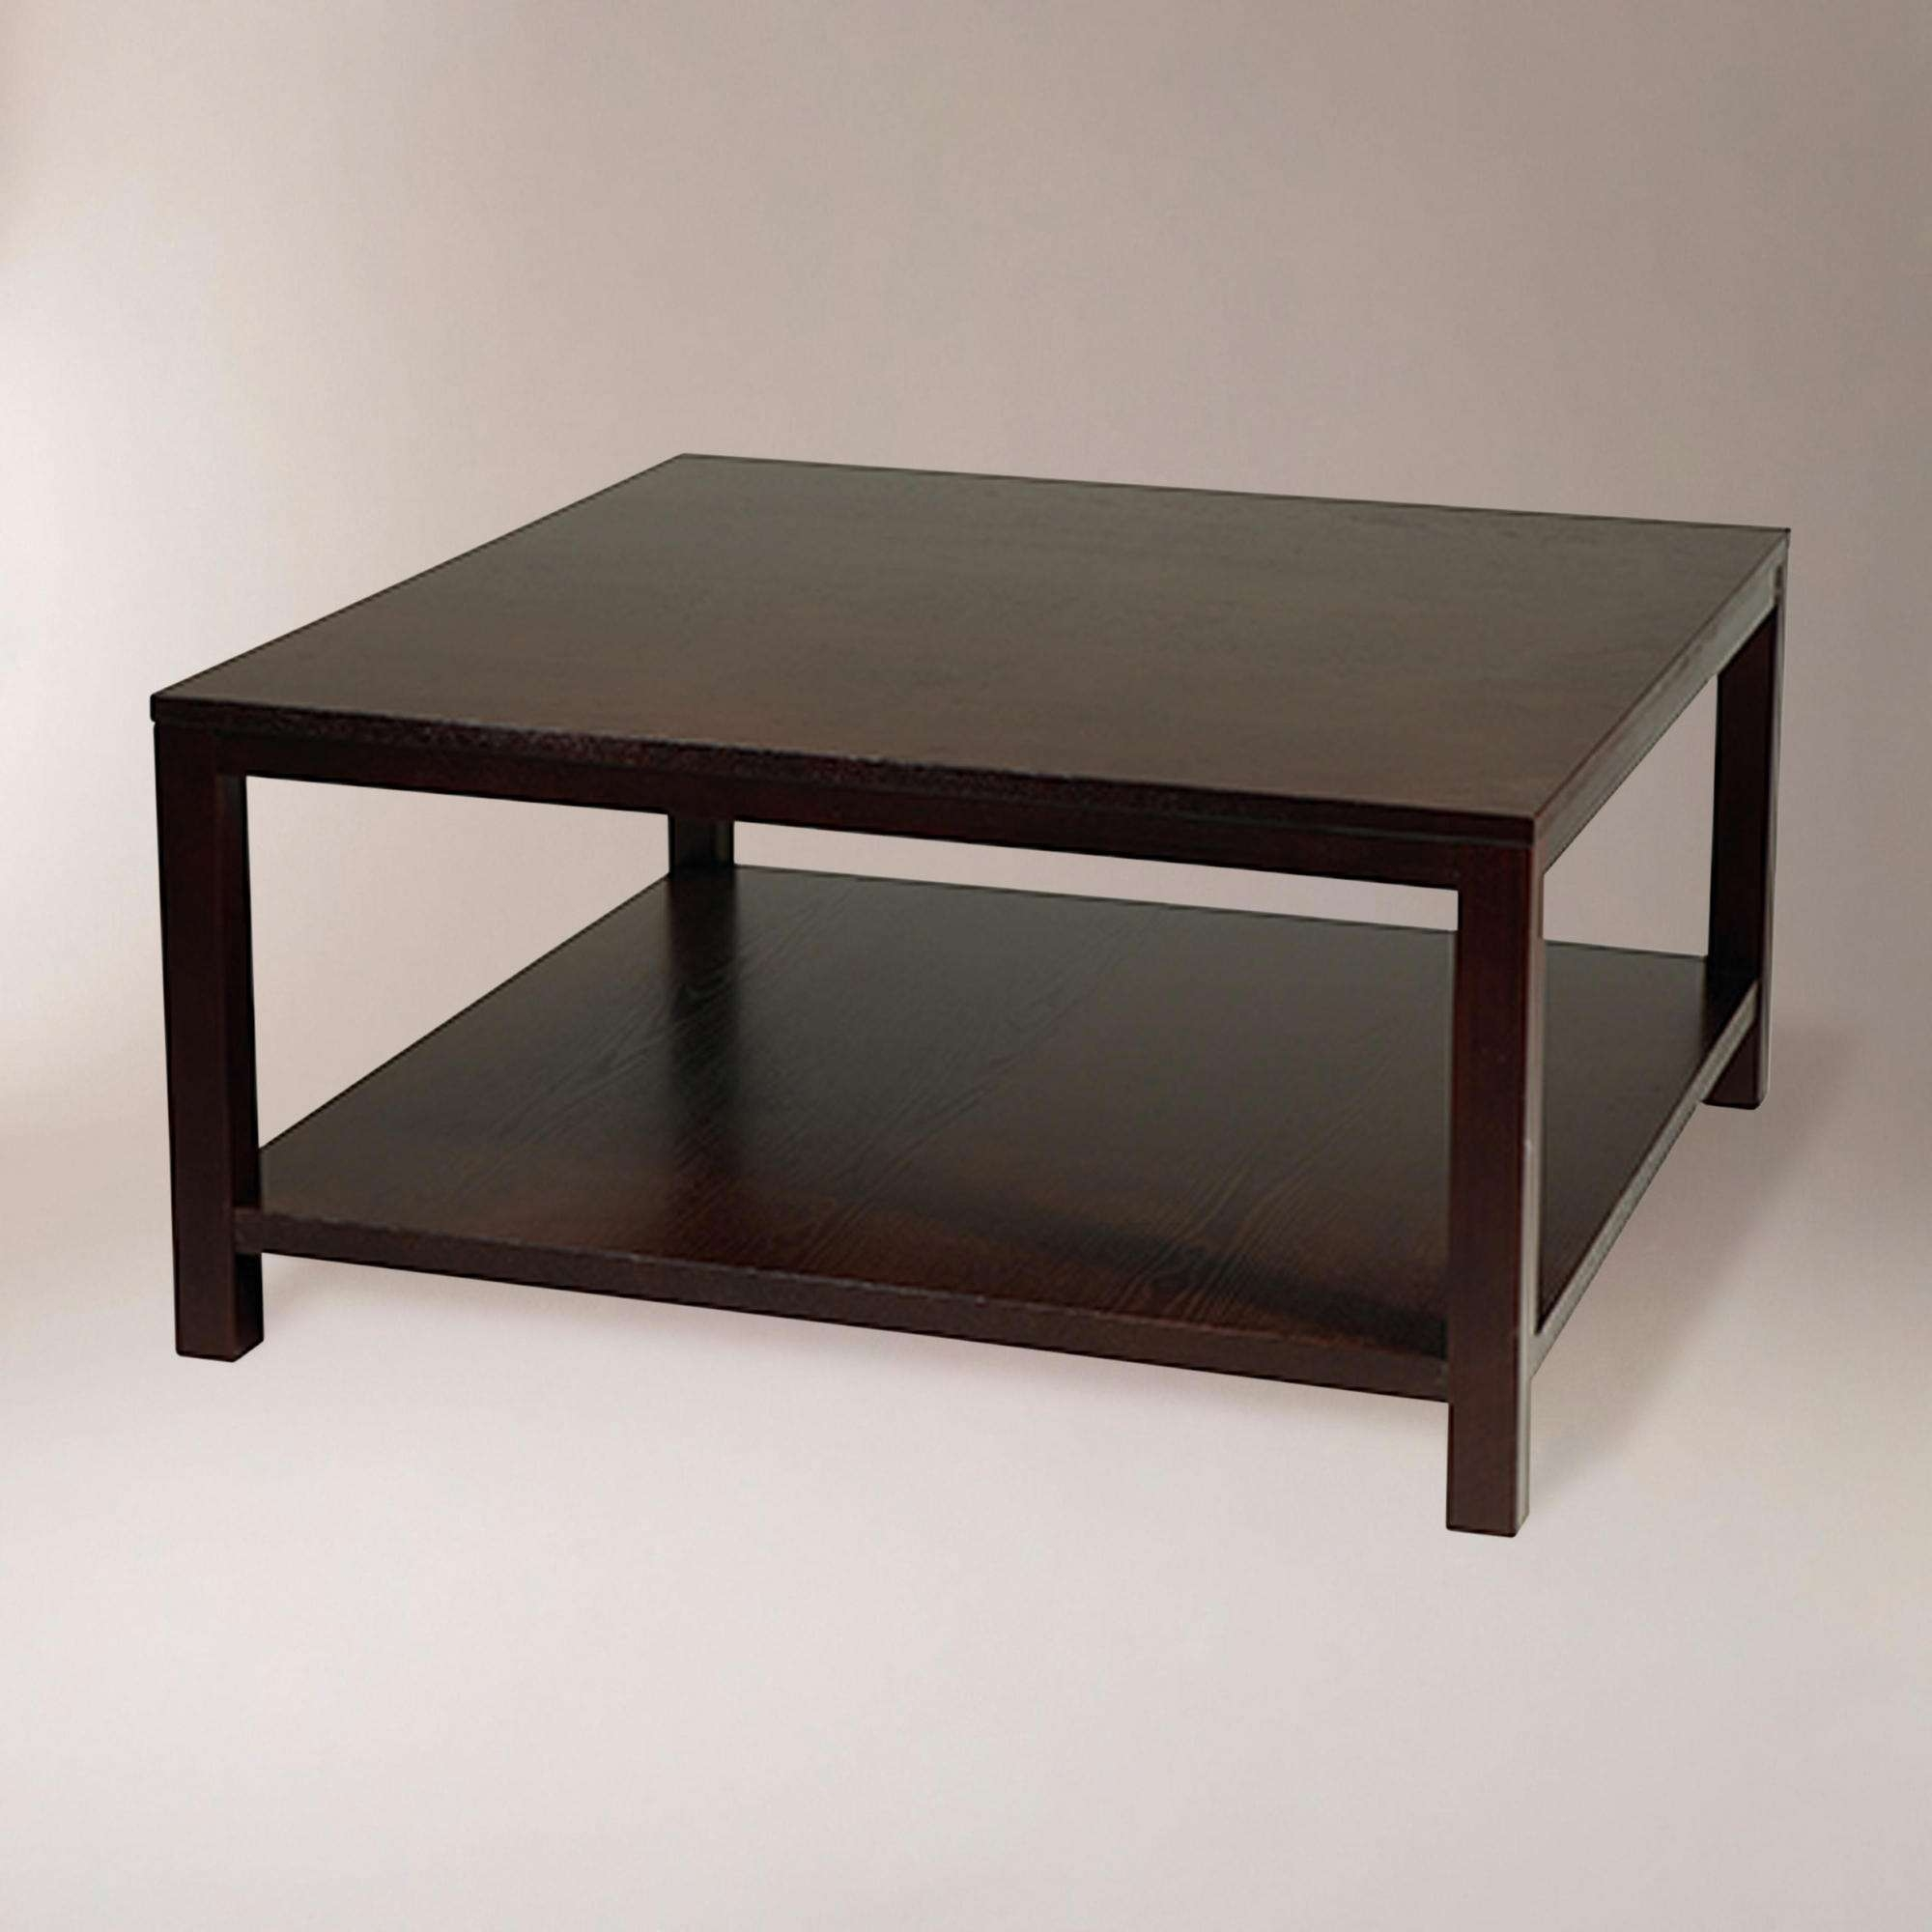 Fashionable Square Coffee Tables Pertaining To Coffee Table : Wonderful Silver Coffee Table Black Square Coffee (View 8 of 20)